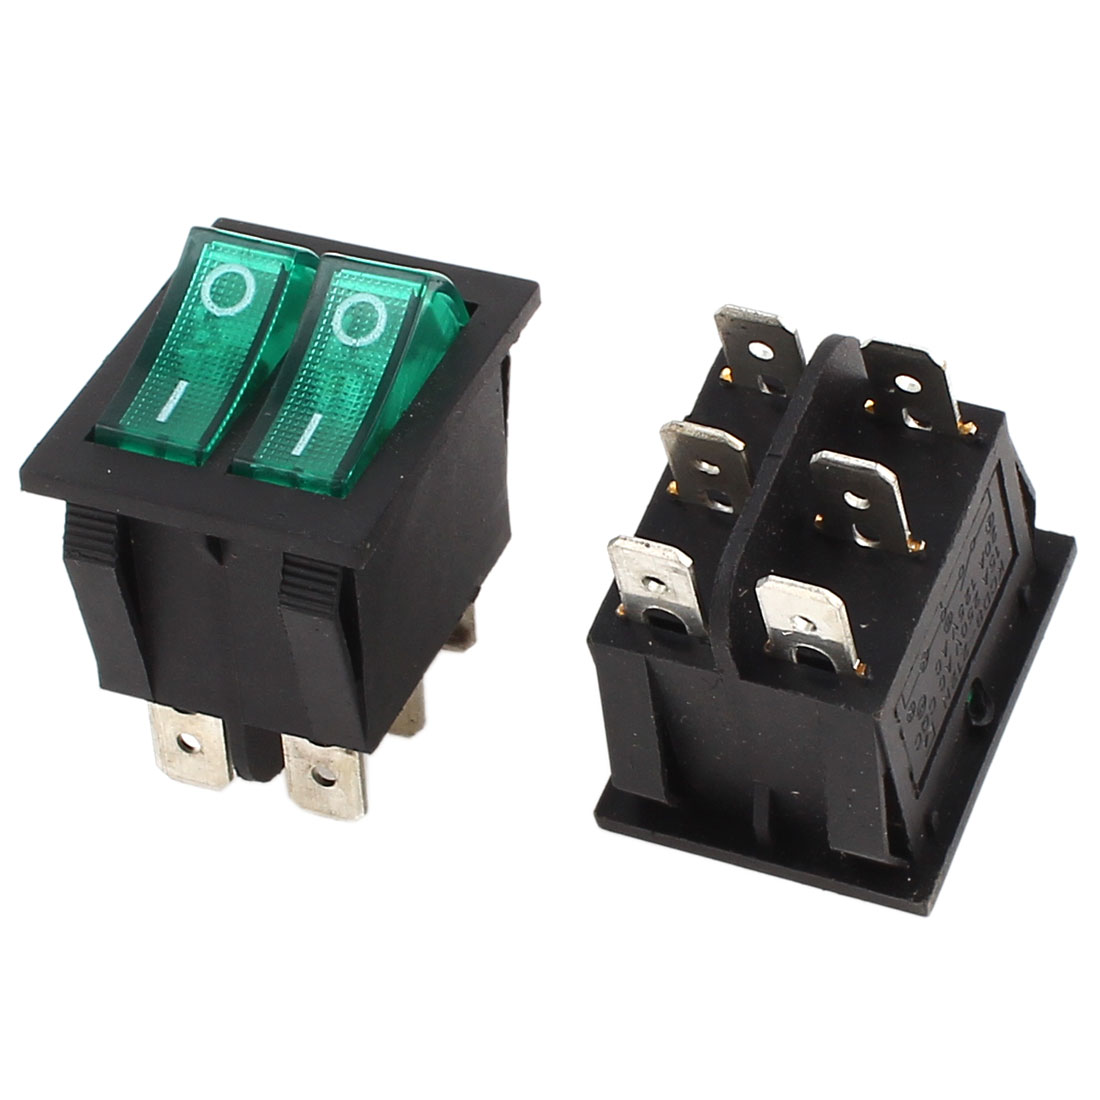 2Pcs SPST Dual Button Green Lamp Boat Rocker Switch 6 Pins AC 250V/15A 125V 20A